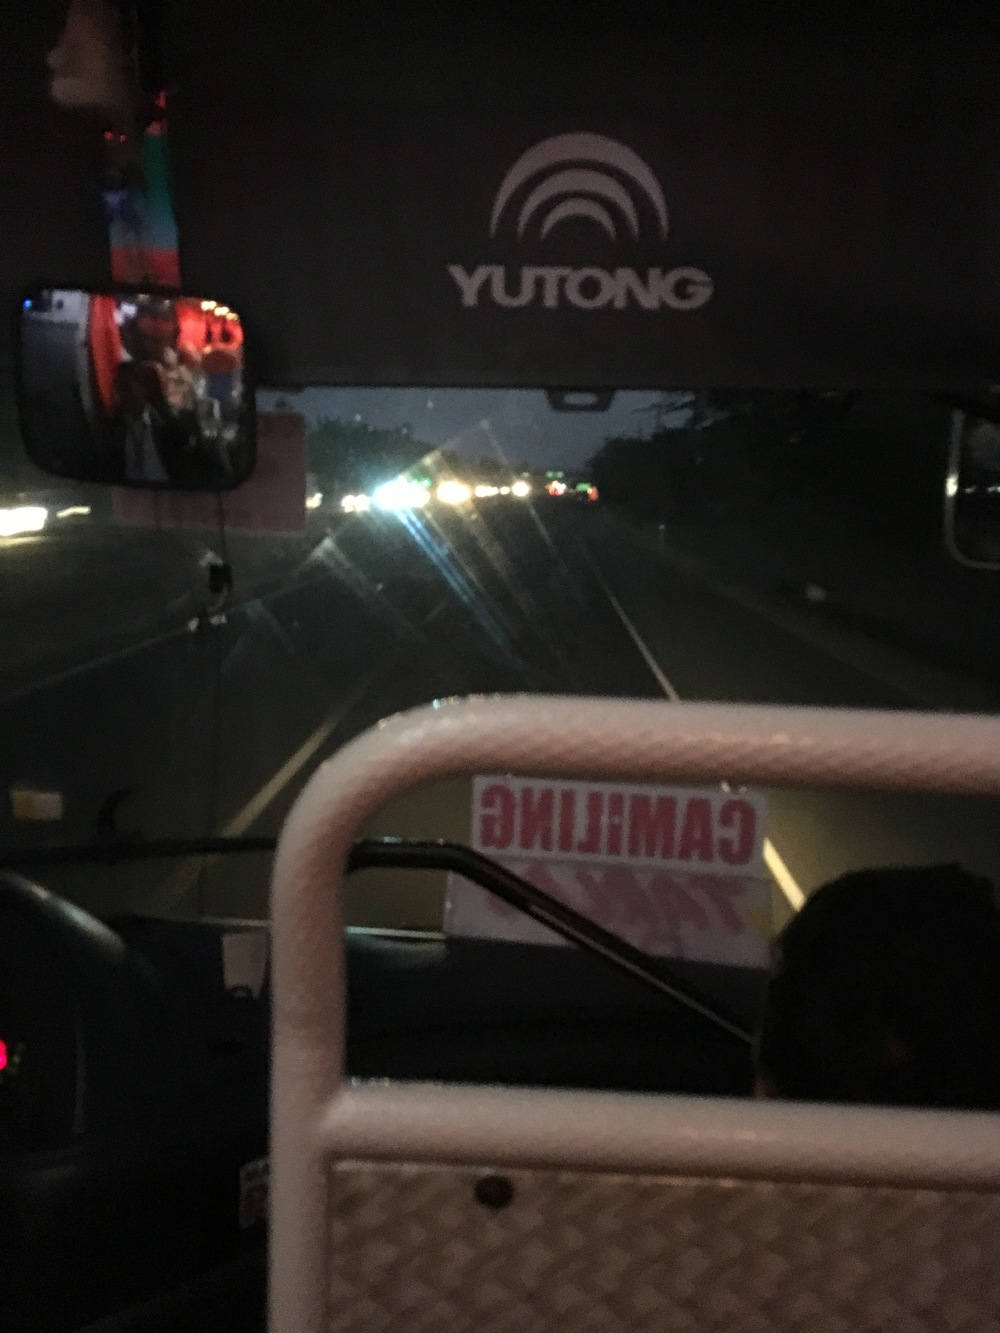 5am - Bus heading north